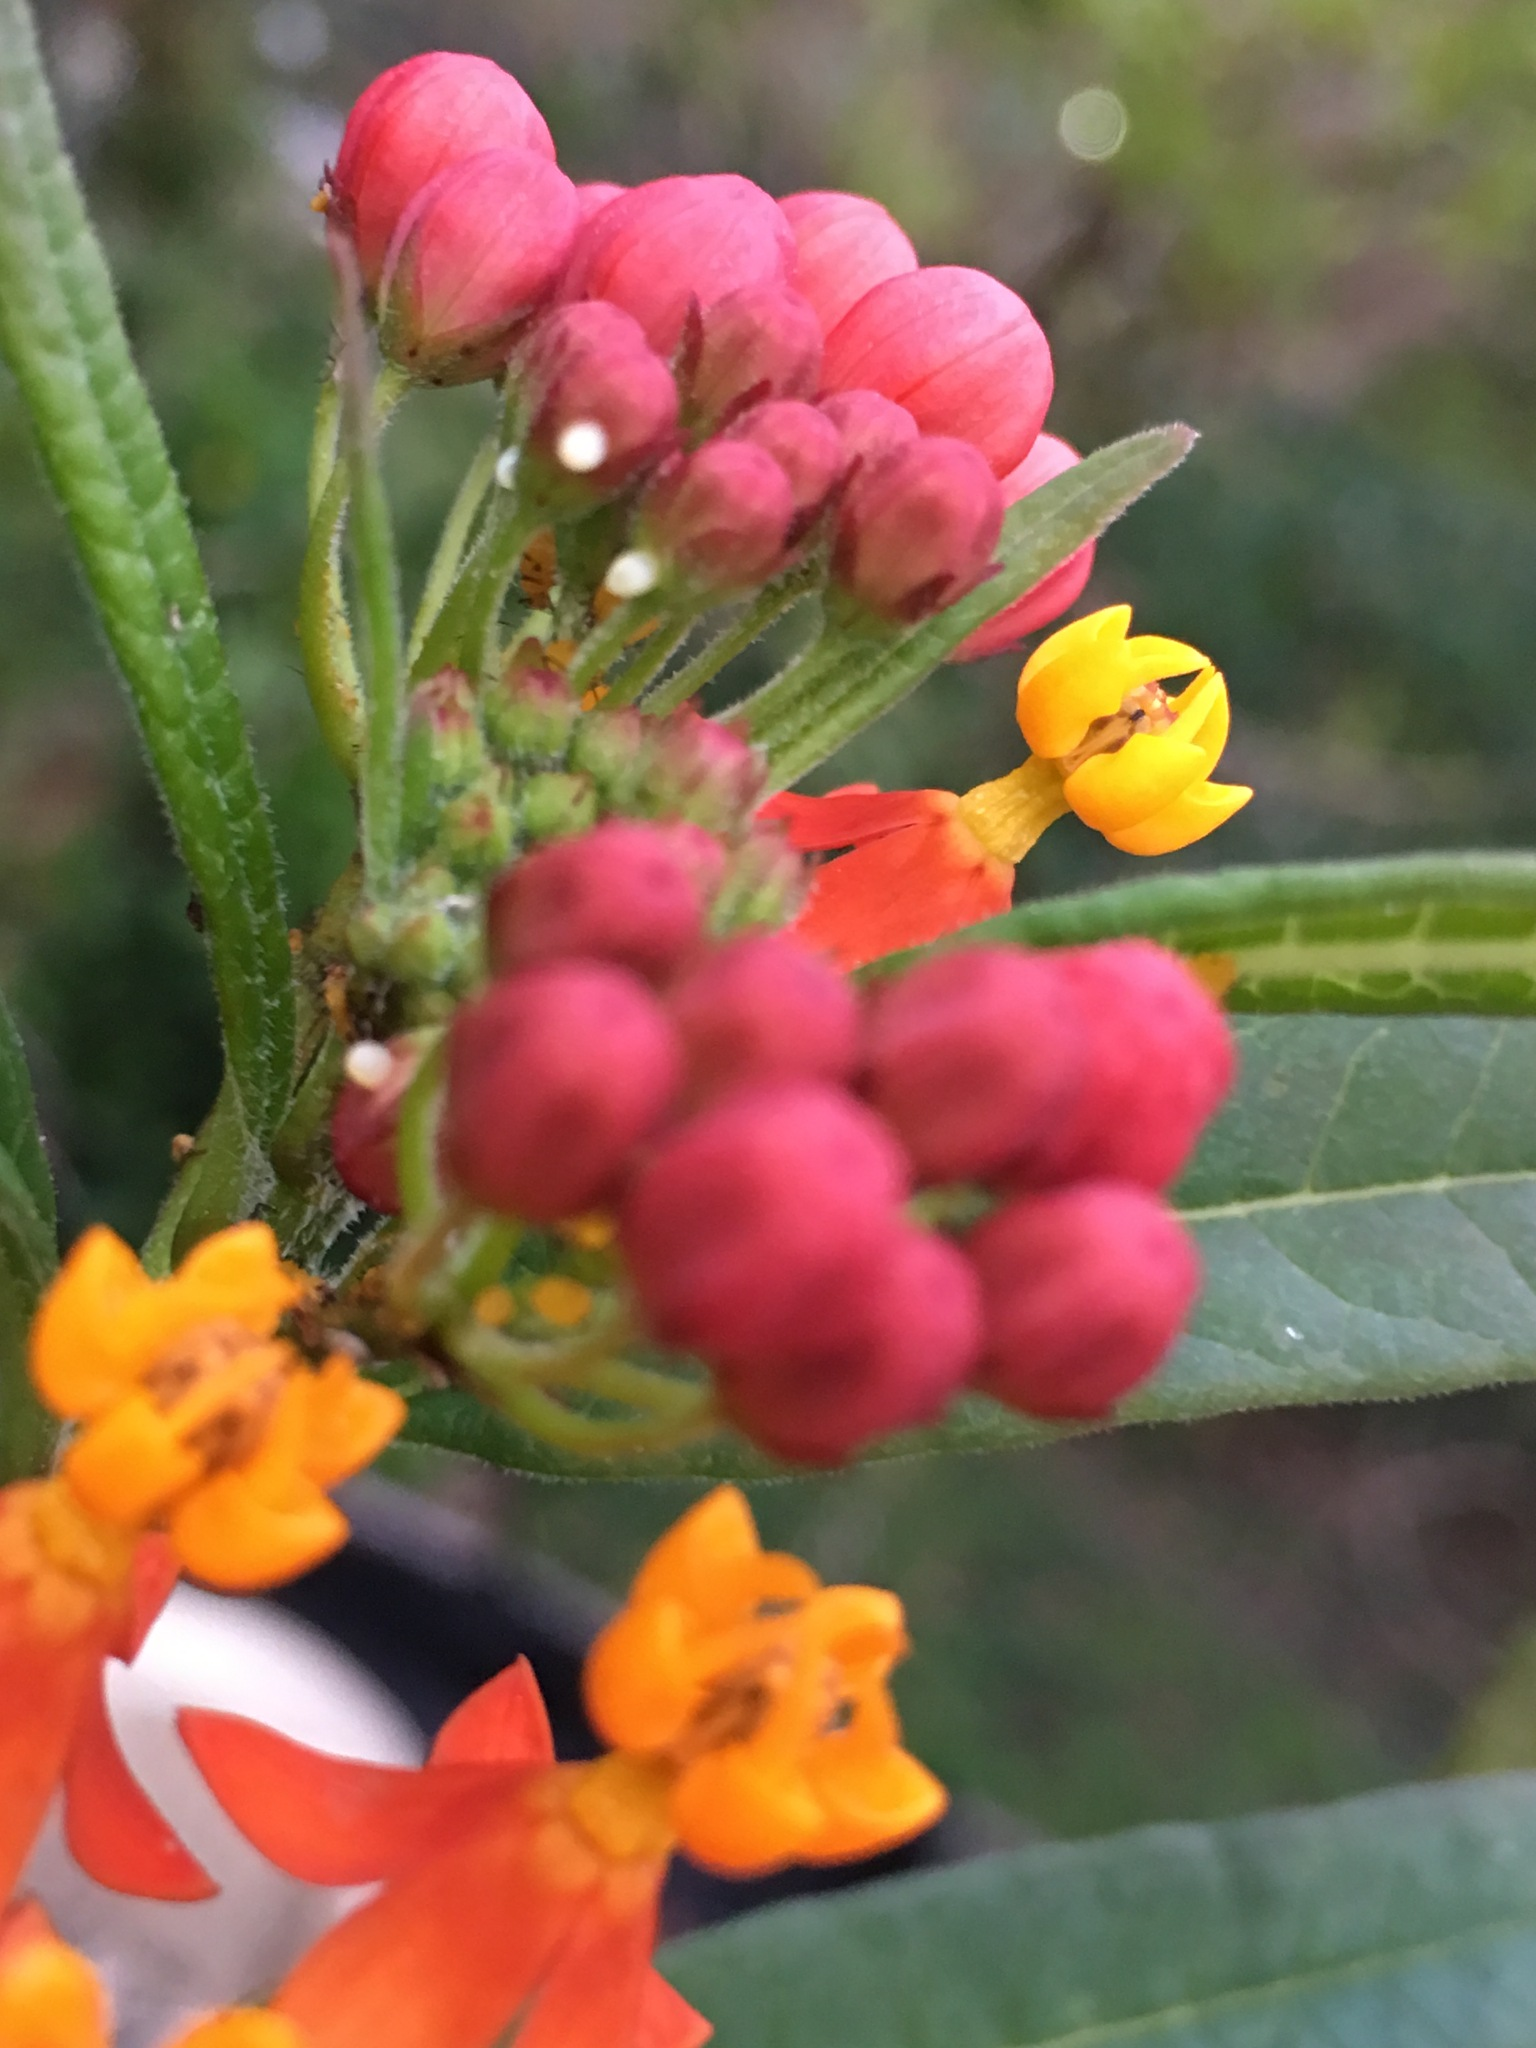 Butterfly eggs on flower buds by pamela.kanarr